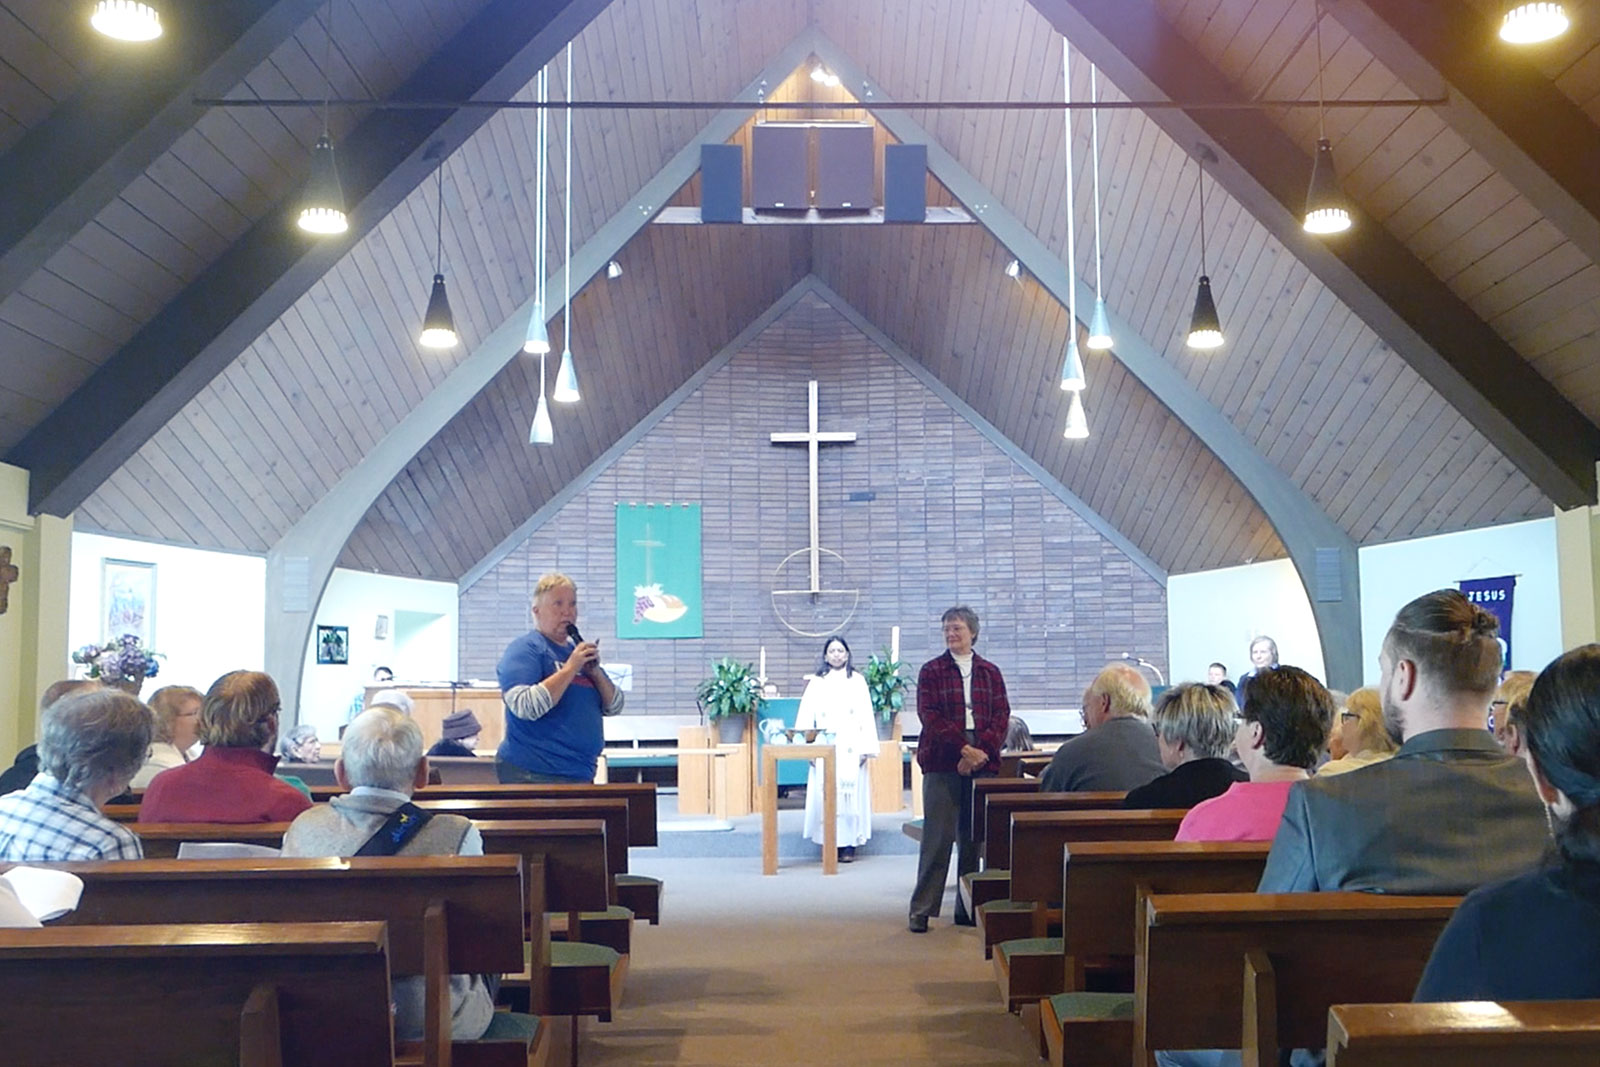 Worship service at Faith Lutheran in Everett, WA